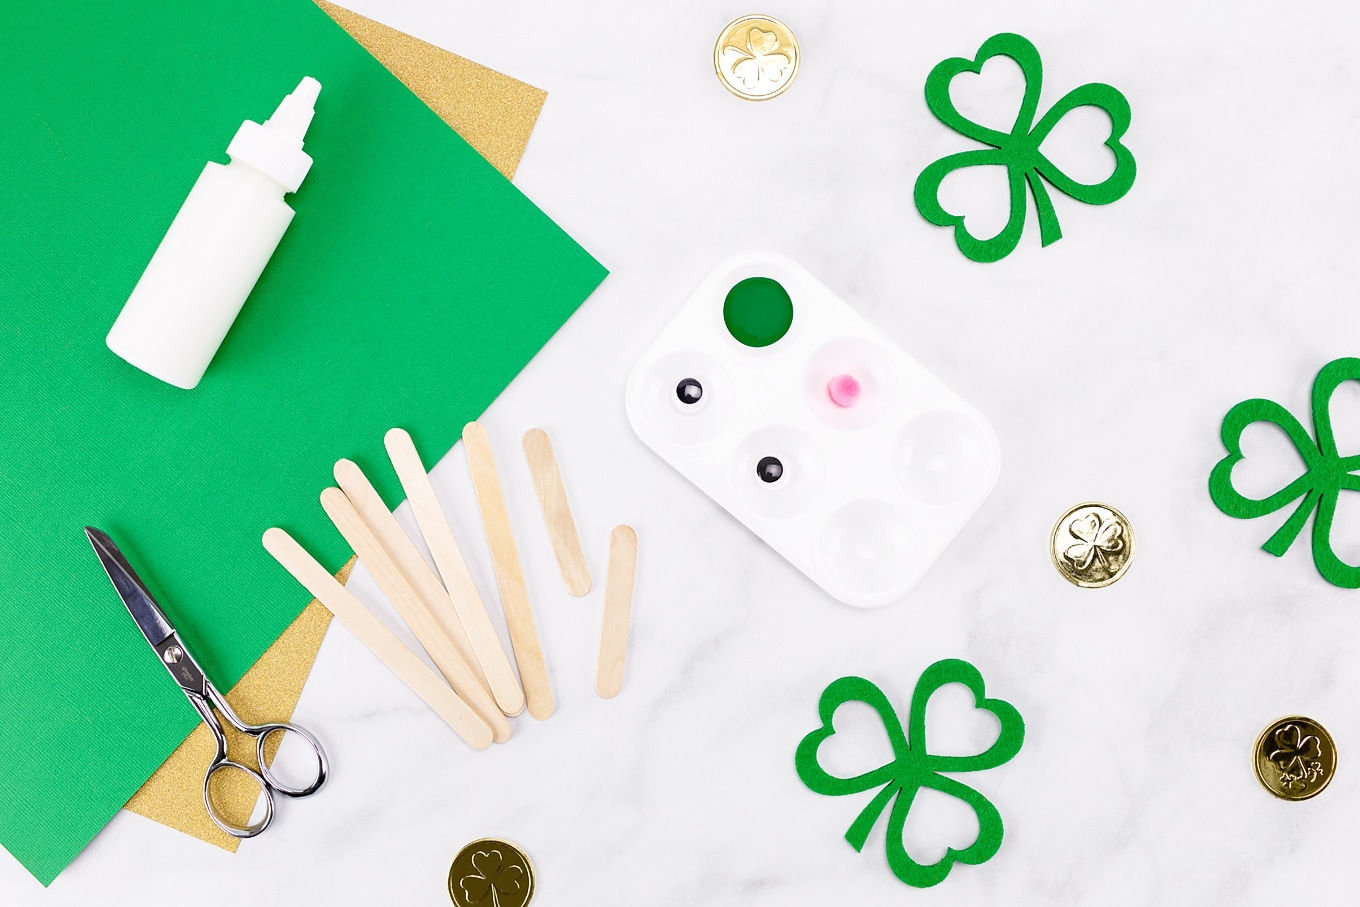 Craft Supplies Needed for Popsicle Stick Leprechaun